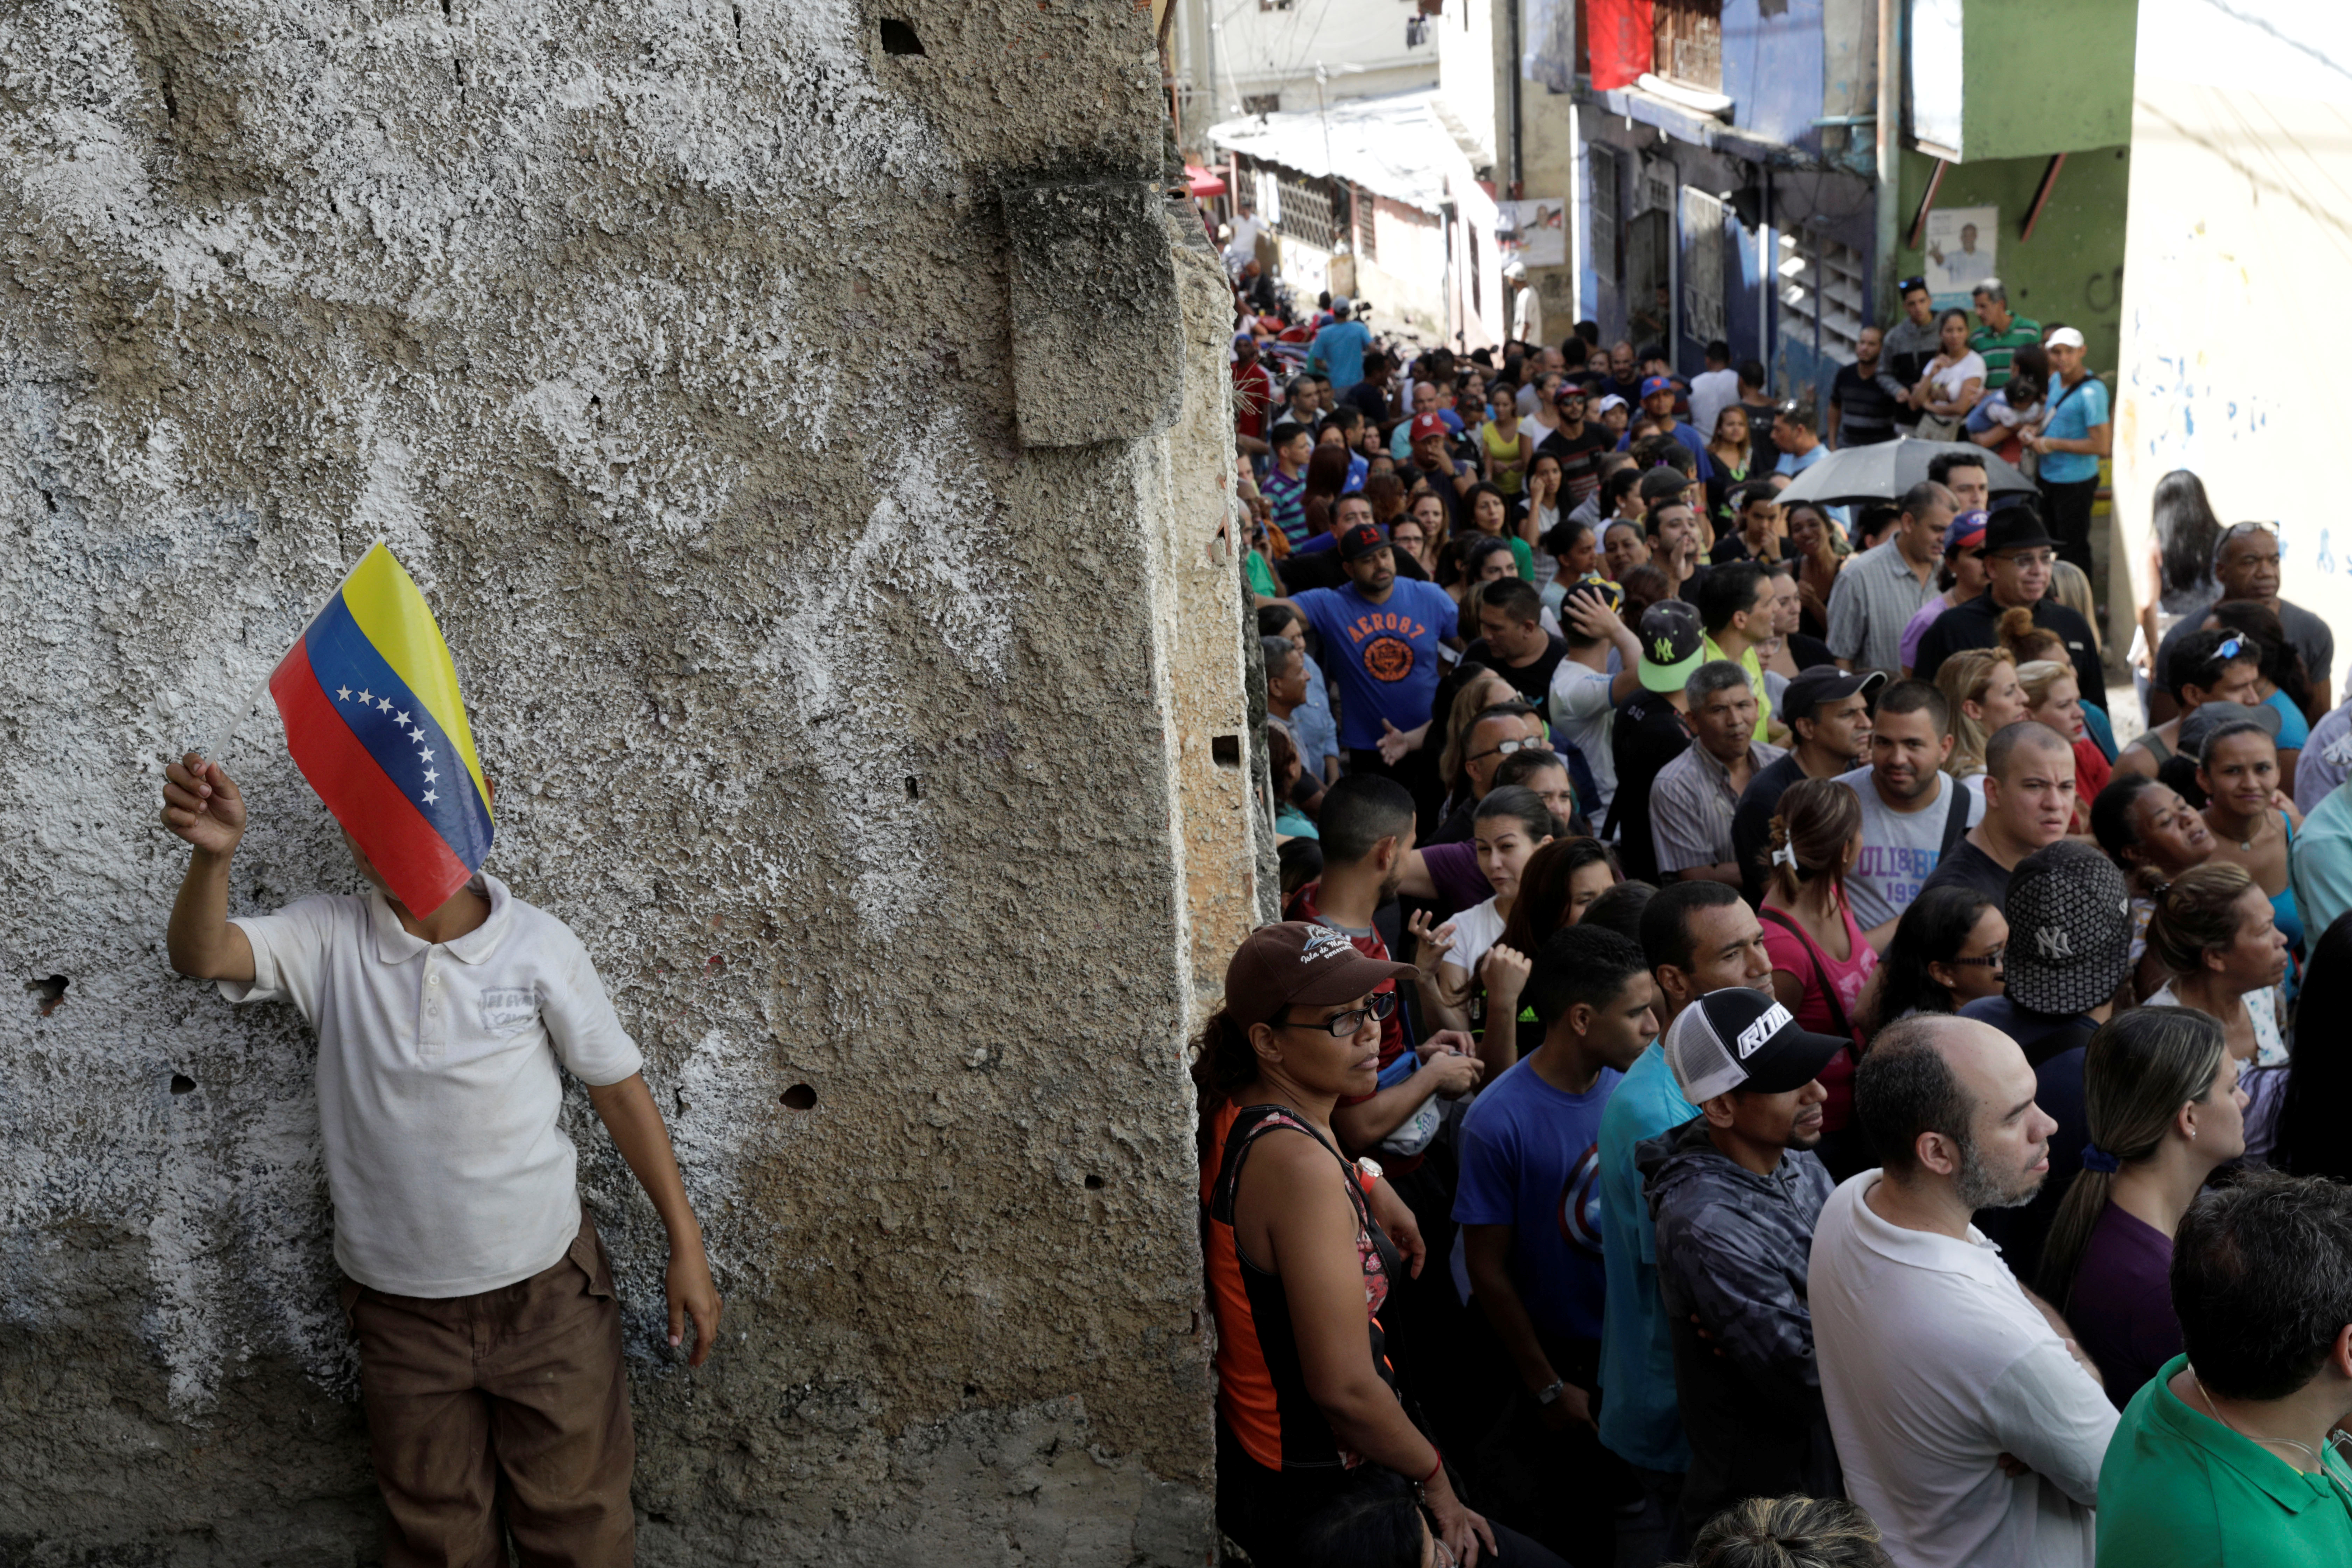 Venezuelan citizens wait in line at a polling station during a nationwide election for new governors in Caracas, Venezuela. REUTERS/Ricardo Moraes